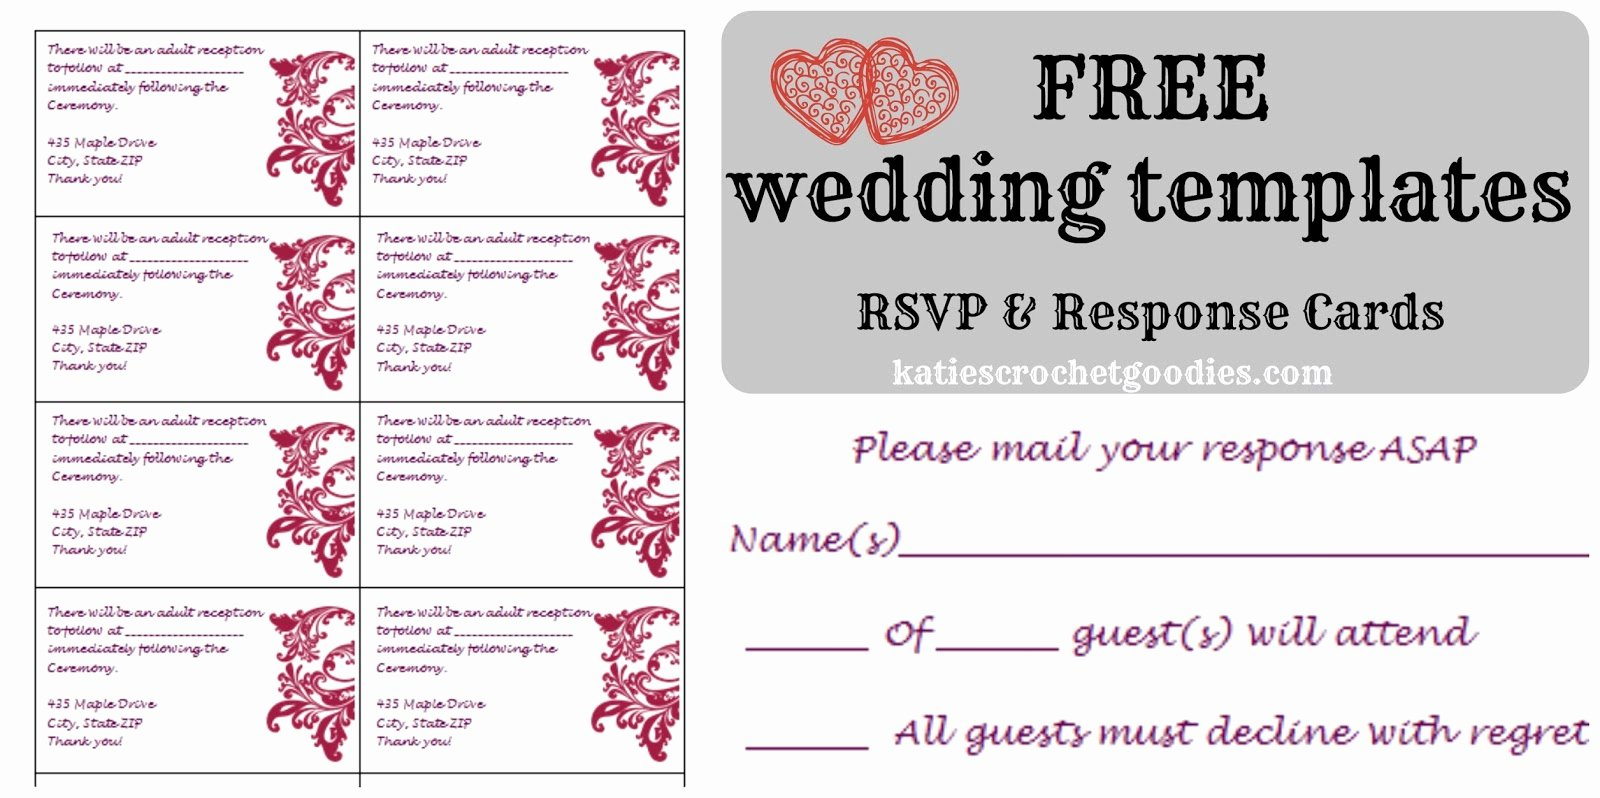 Free Printable Postcard Template Luxury Free Wedding Templates Rsvp & Reception Cards Katie S